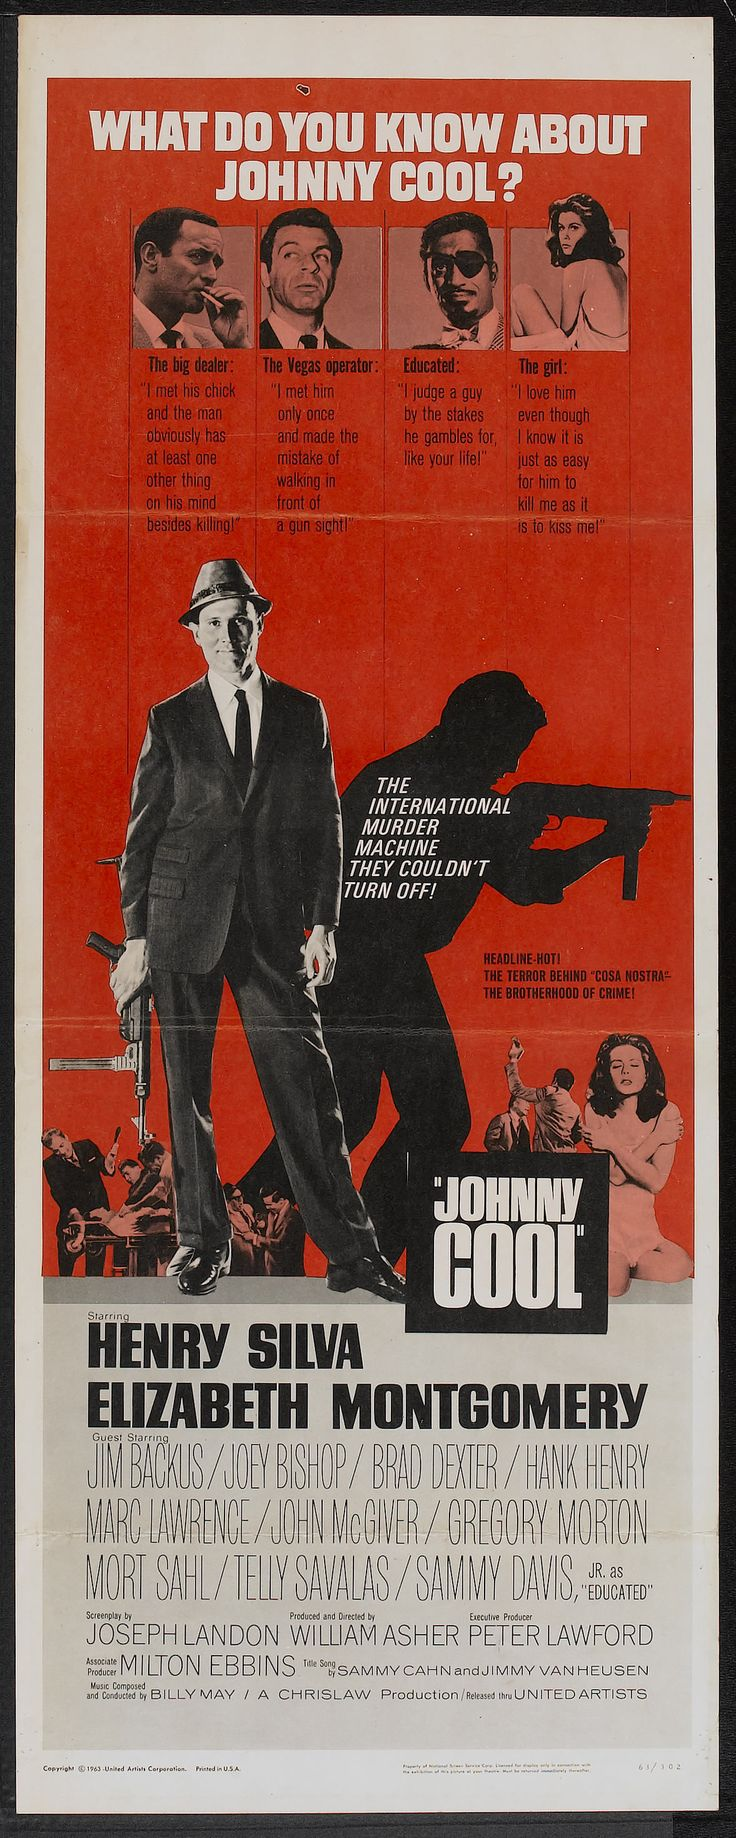 Johnny Cool (1963) Stars: Henry Silva, Elizabeth Montgomery, Richard Anderson, Jim Backus, Gregory Morton, Telly Savalas, Sammy Davis Jr. ~ Director: William Asher